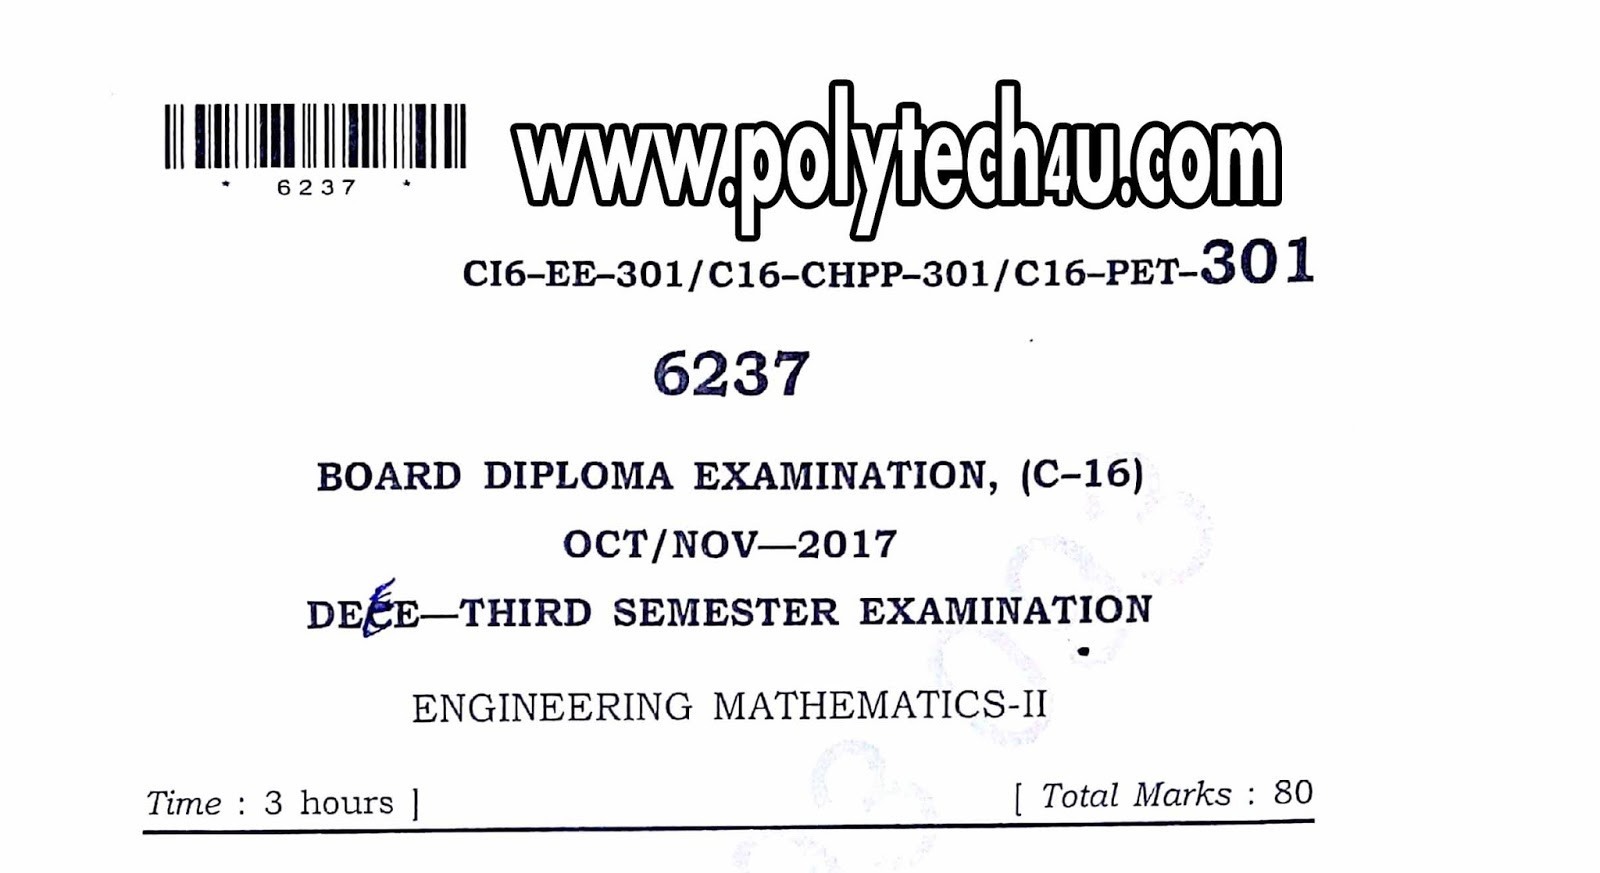 Diploma maths 2 c 16 eee old question paper pdf octnov 2017 sbtet click below for free download engineering mathematics 2 question paper fandeluxe Images